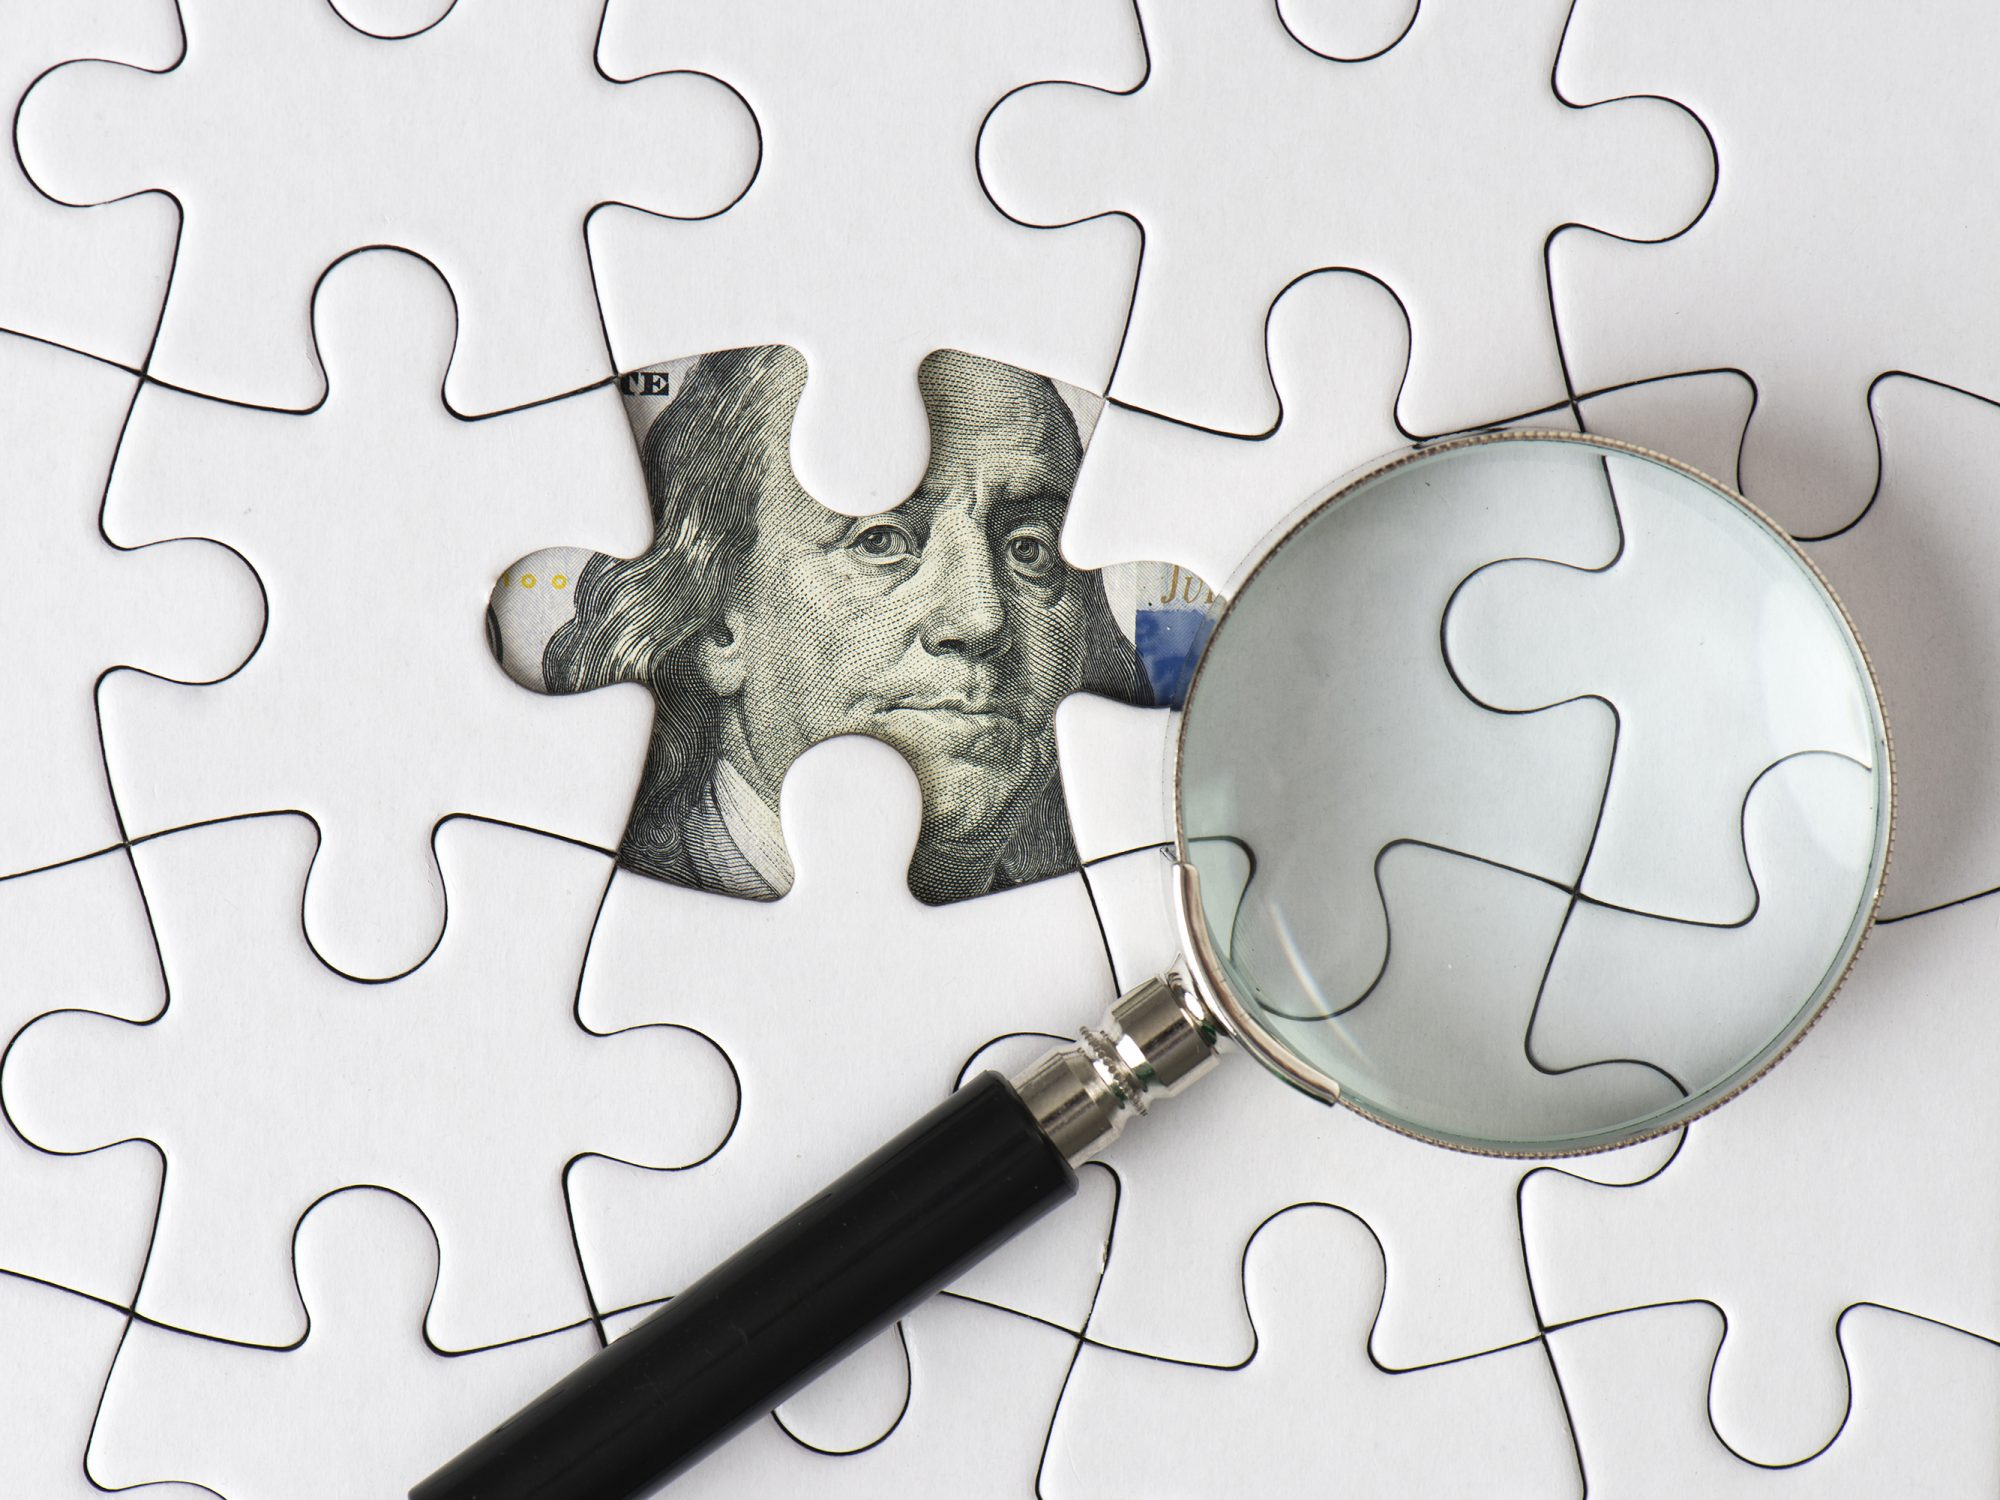 jigsaw puzzle with on piece missing and a dollar under it and a magnifying glass